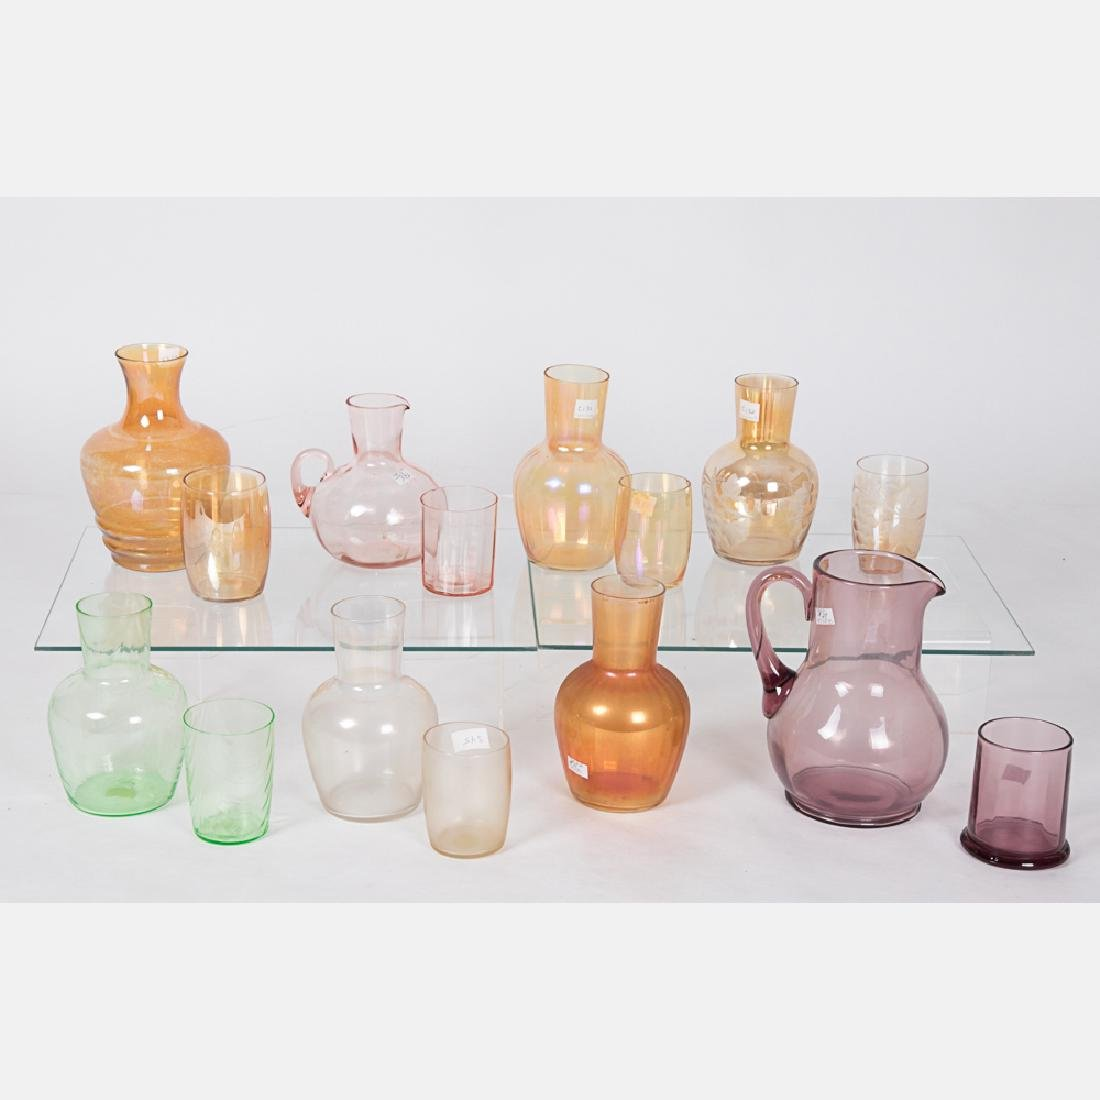 A Collection of Colored Blown Glass Tumble-Ups by